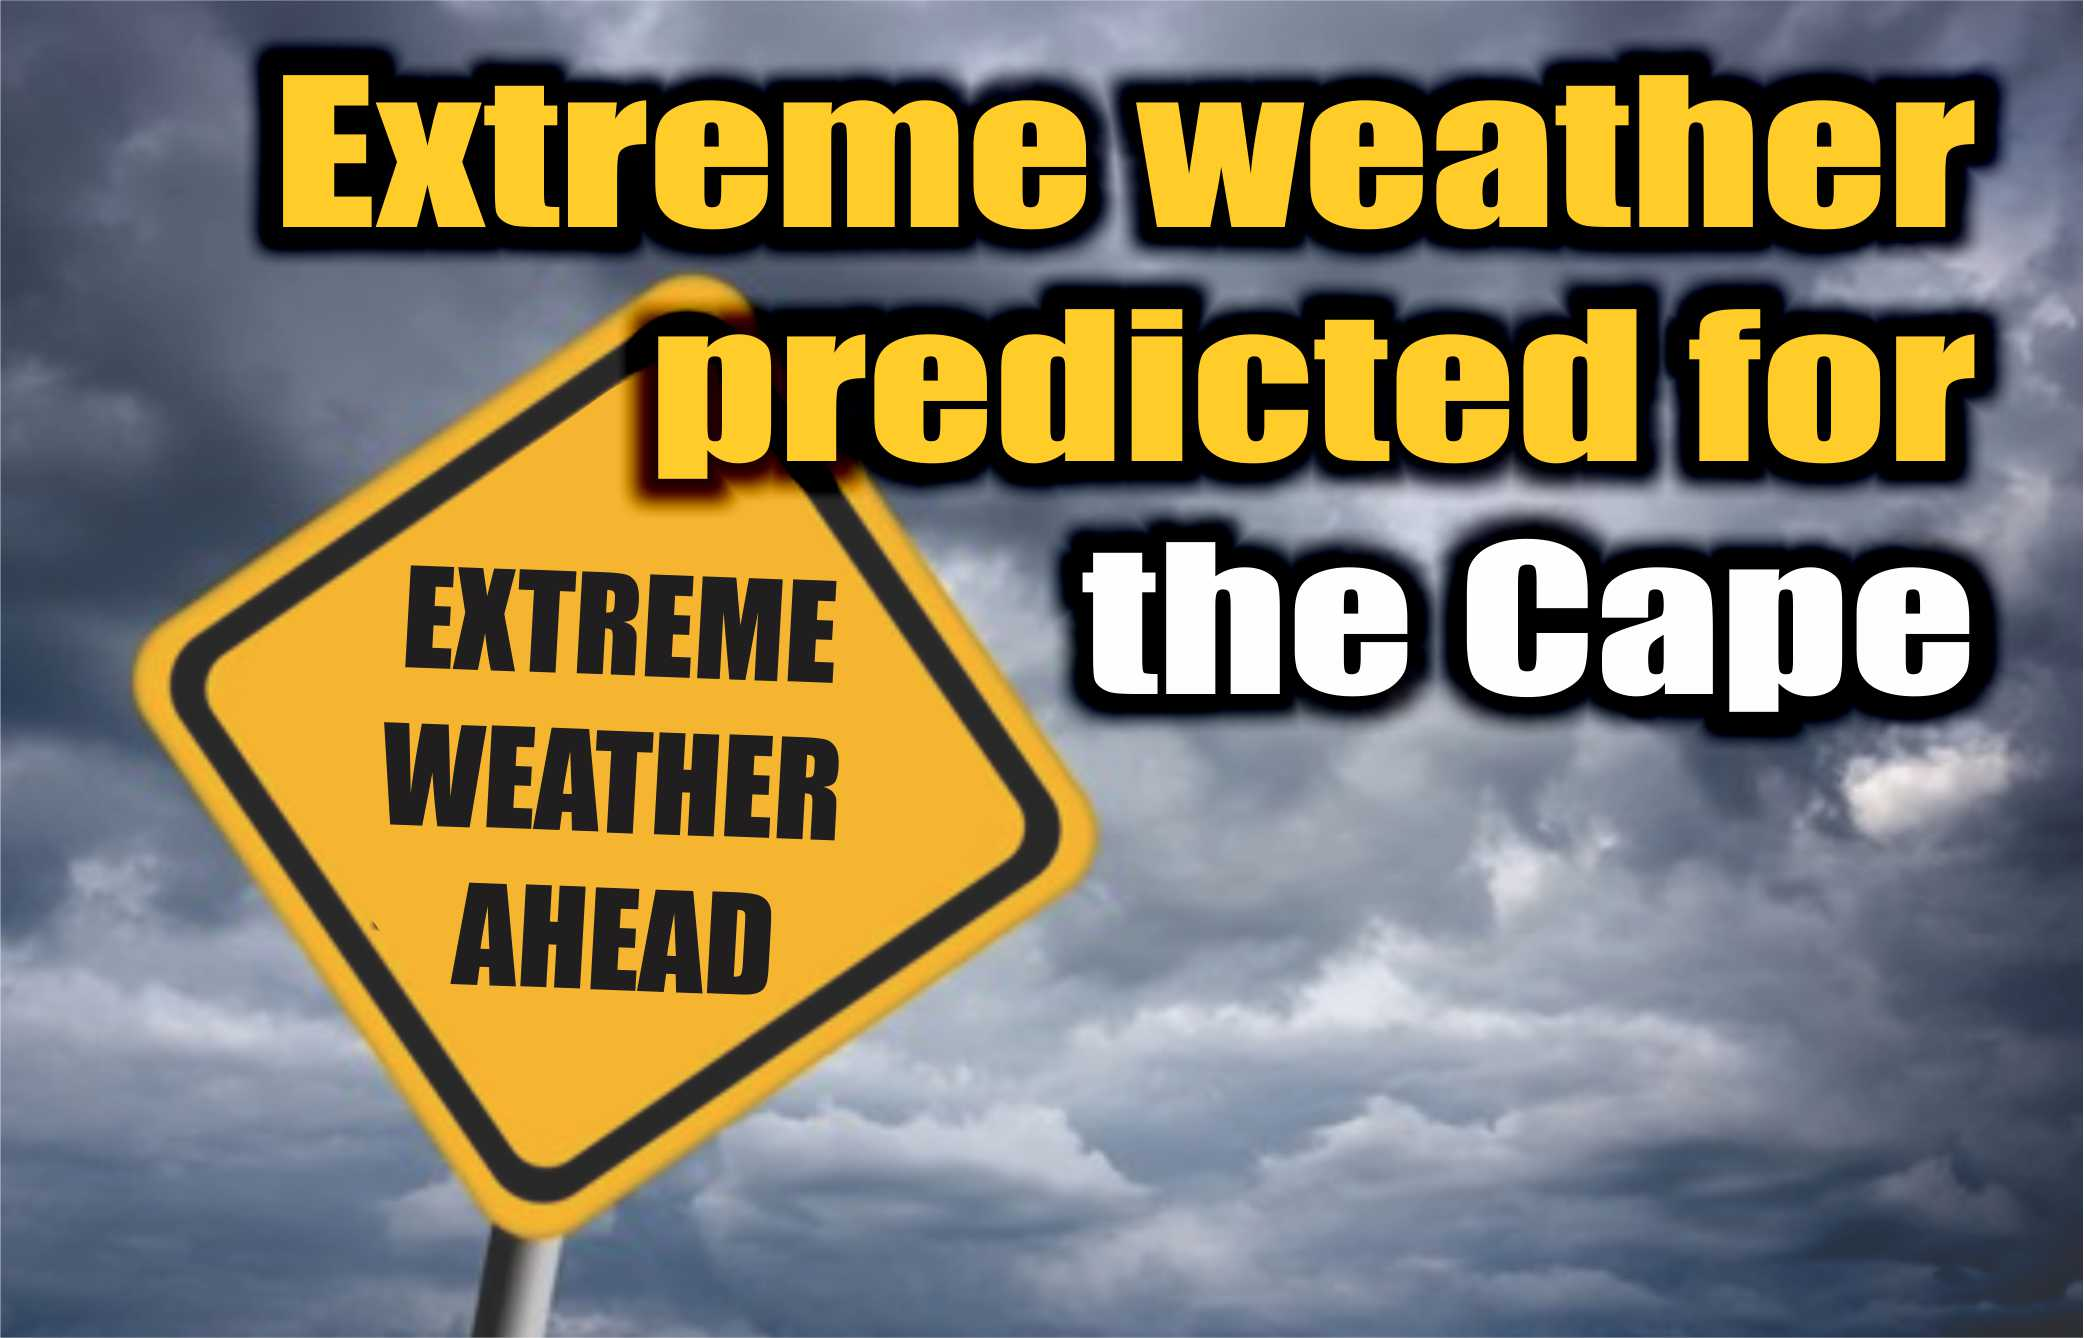 extreme weather ahead for cape